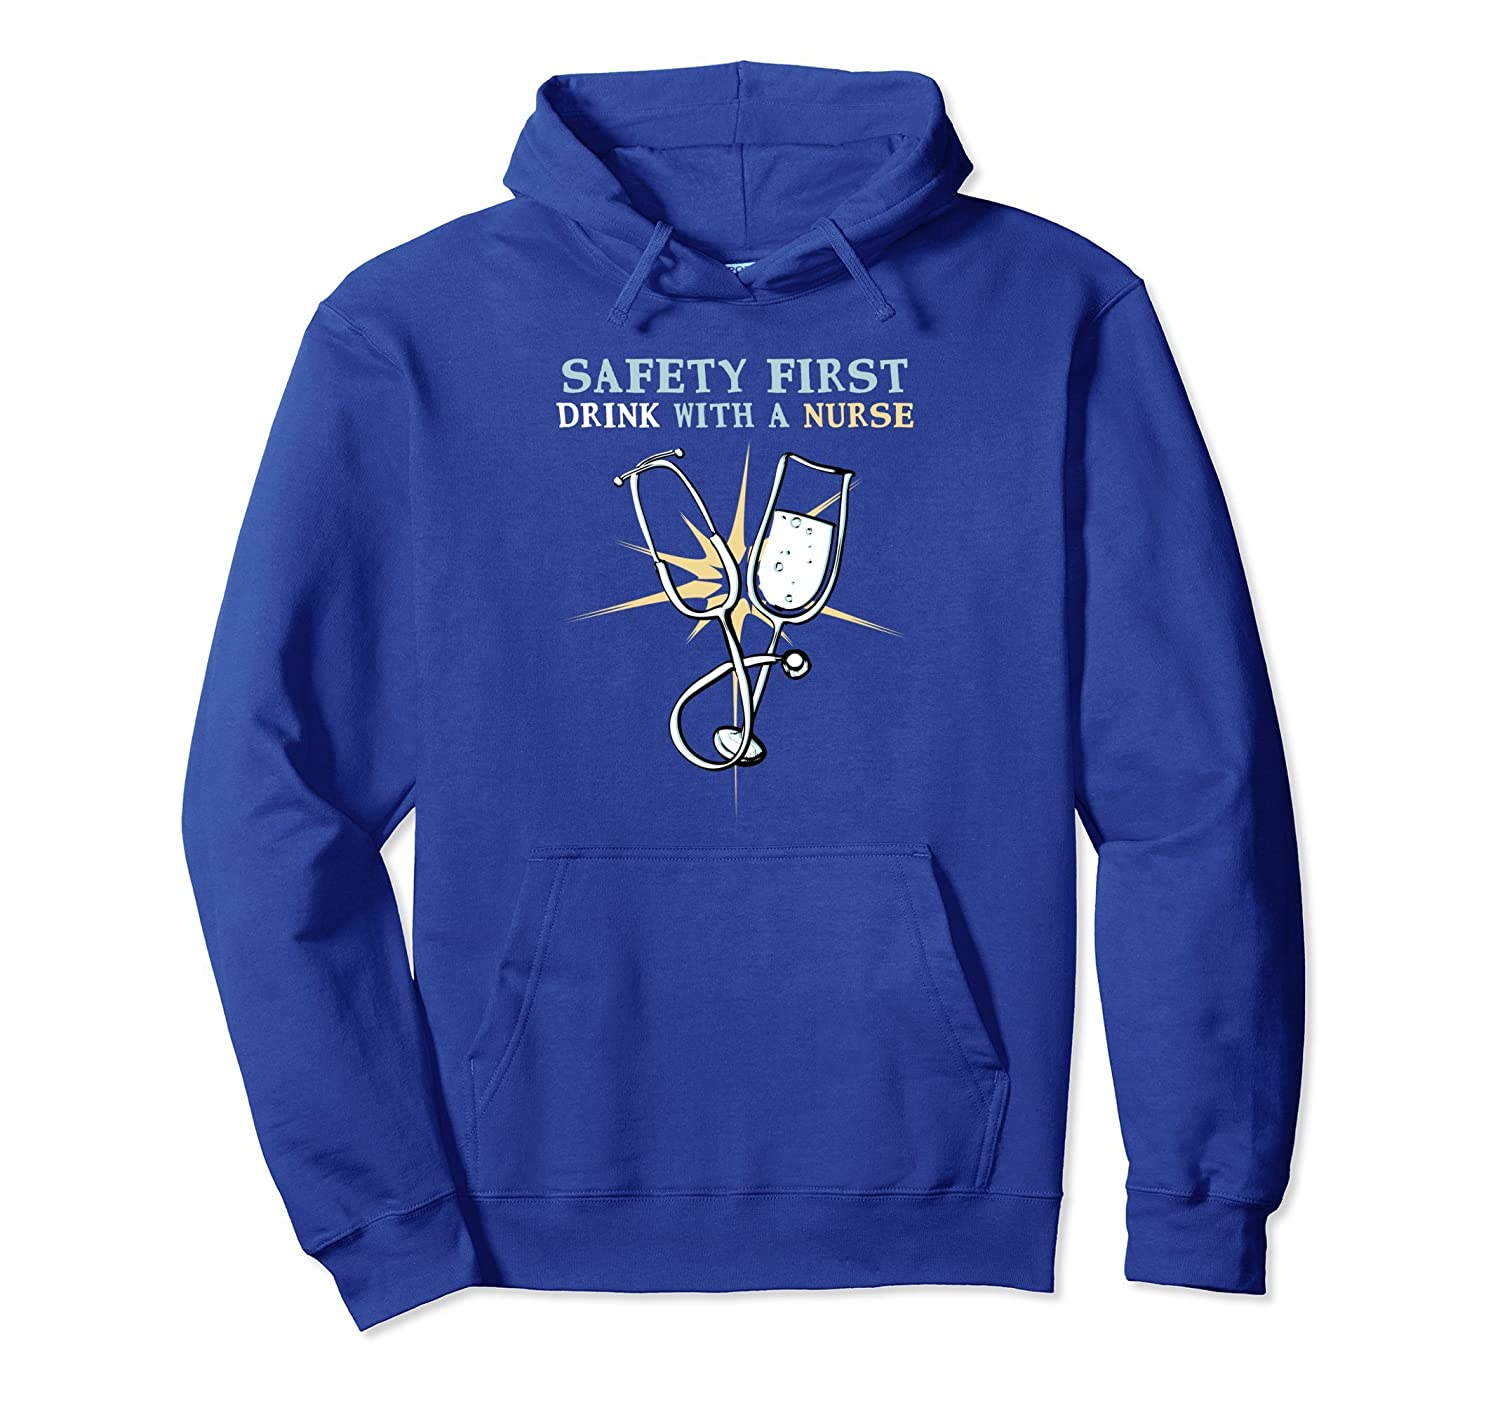 Safety First - Drink With A Nurse Funny Hoodie Cool RN-AZP